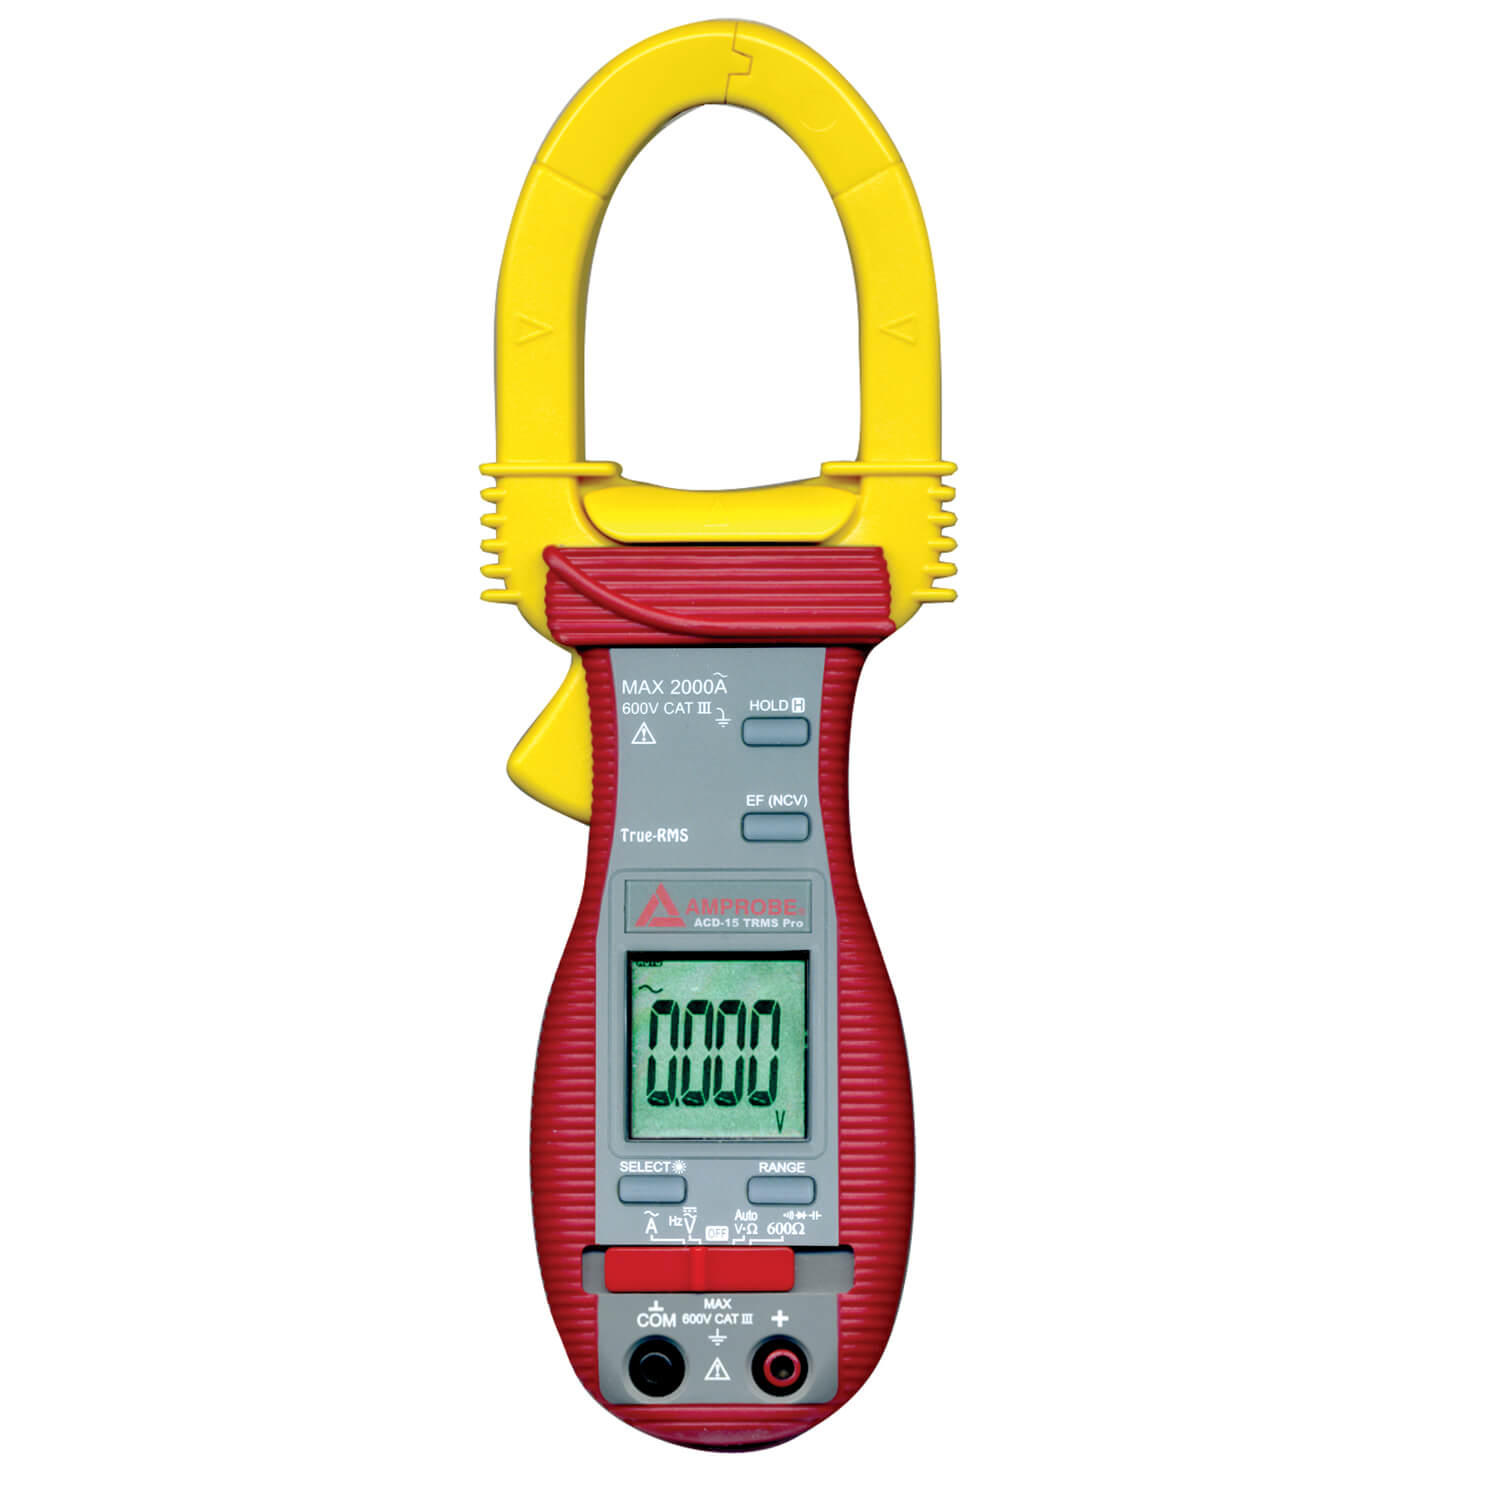 Amprobe ACD-15 Pro Digital Clamp Multimeter 2000A